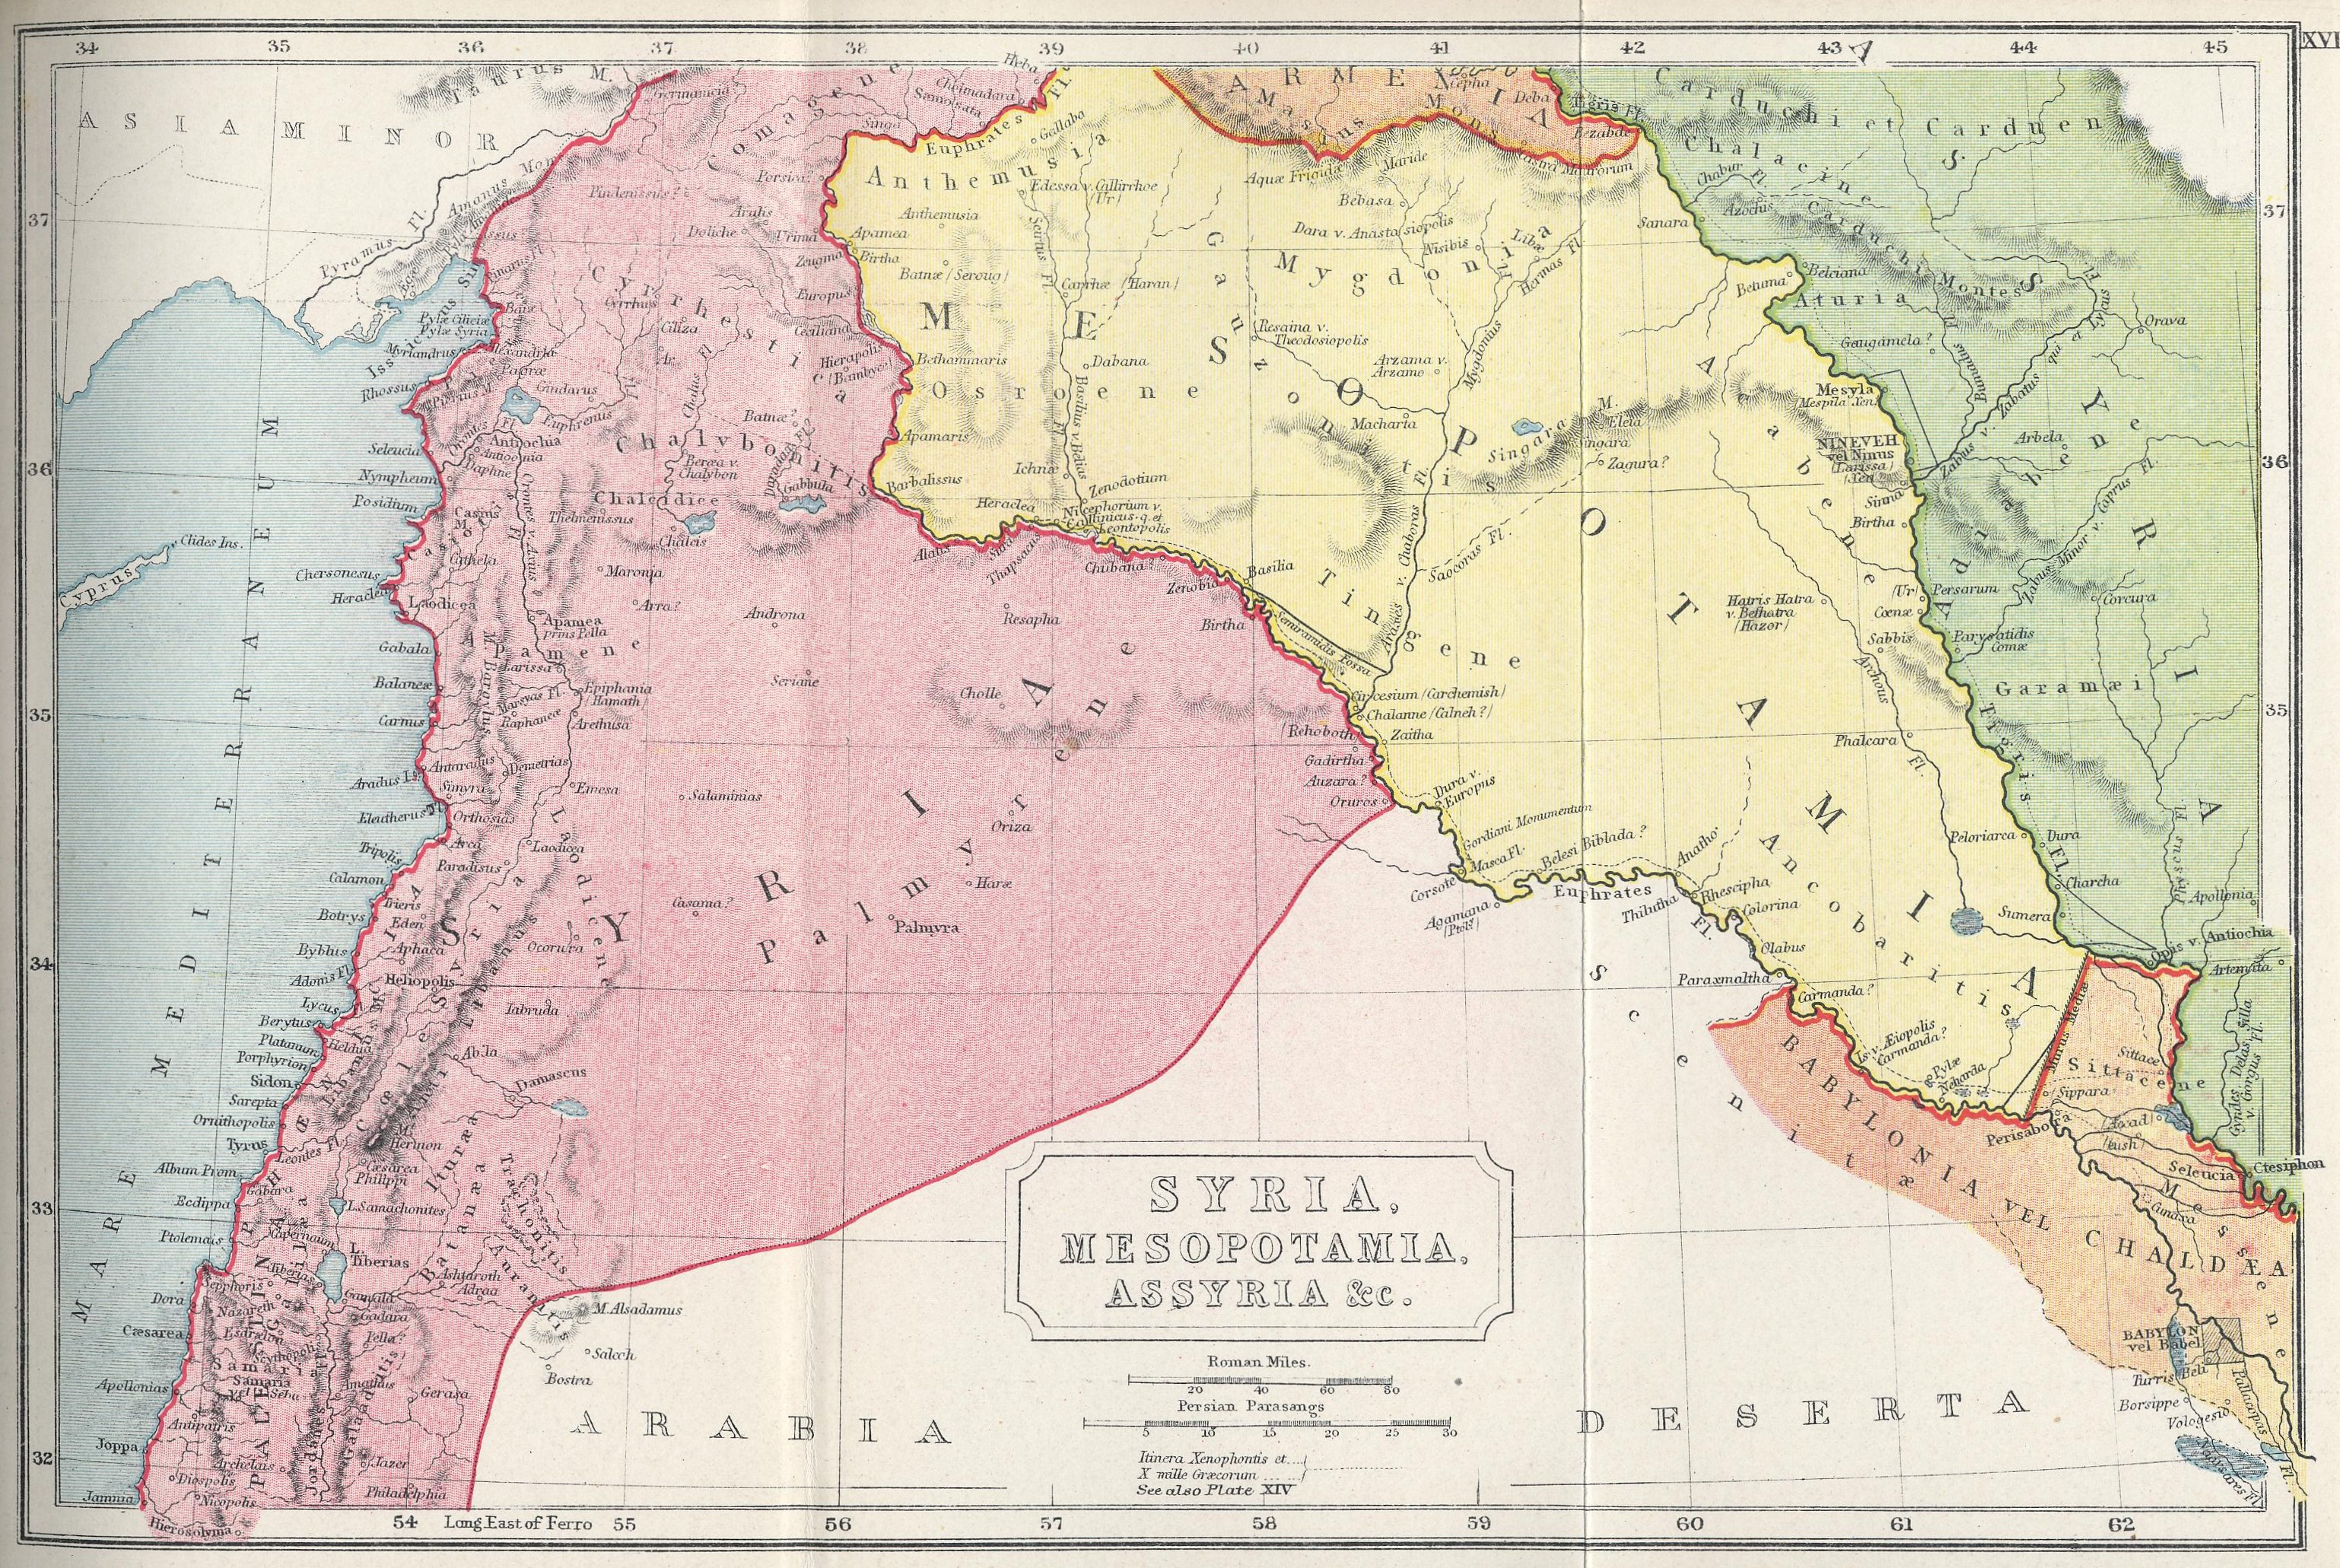 Map of Syria and Mesopotamia 70 BC - AD 180